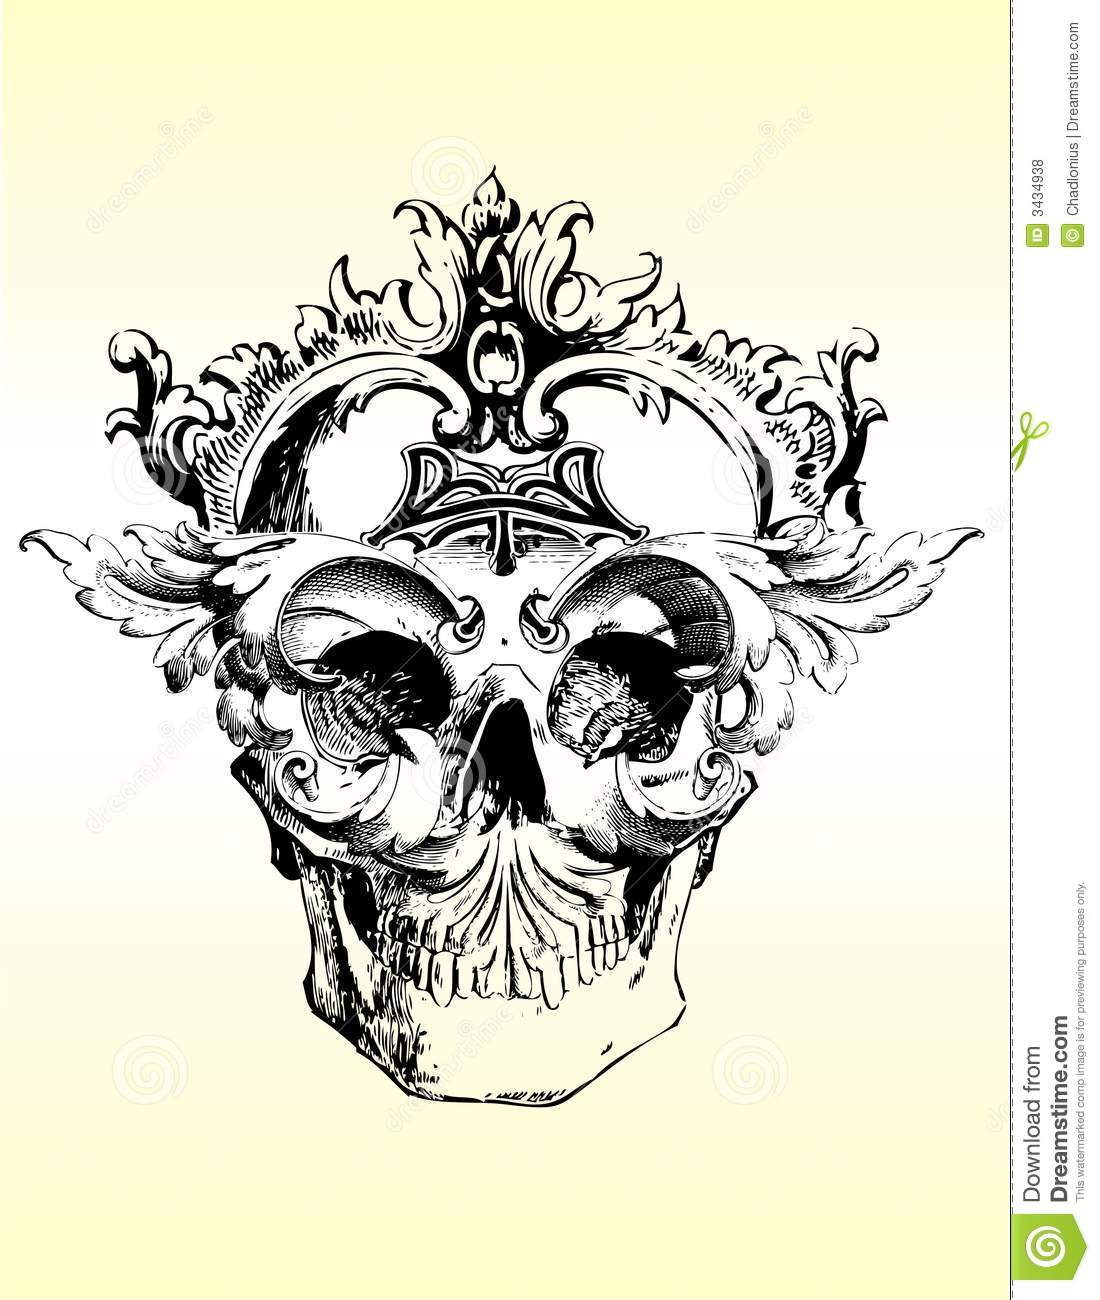 Twisted skull illustration stock vector. Image of ...